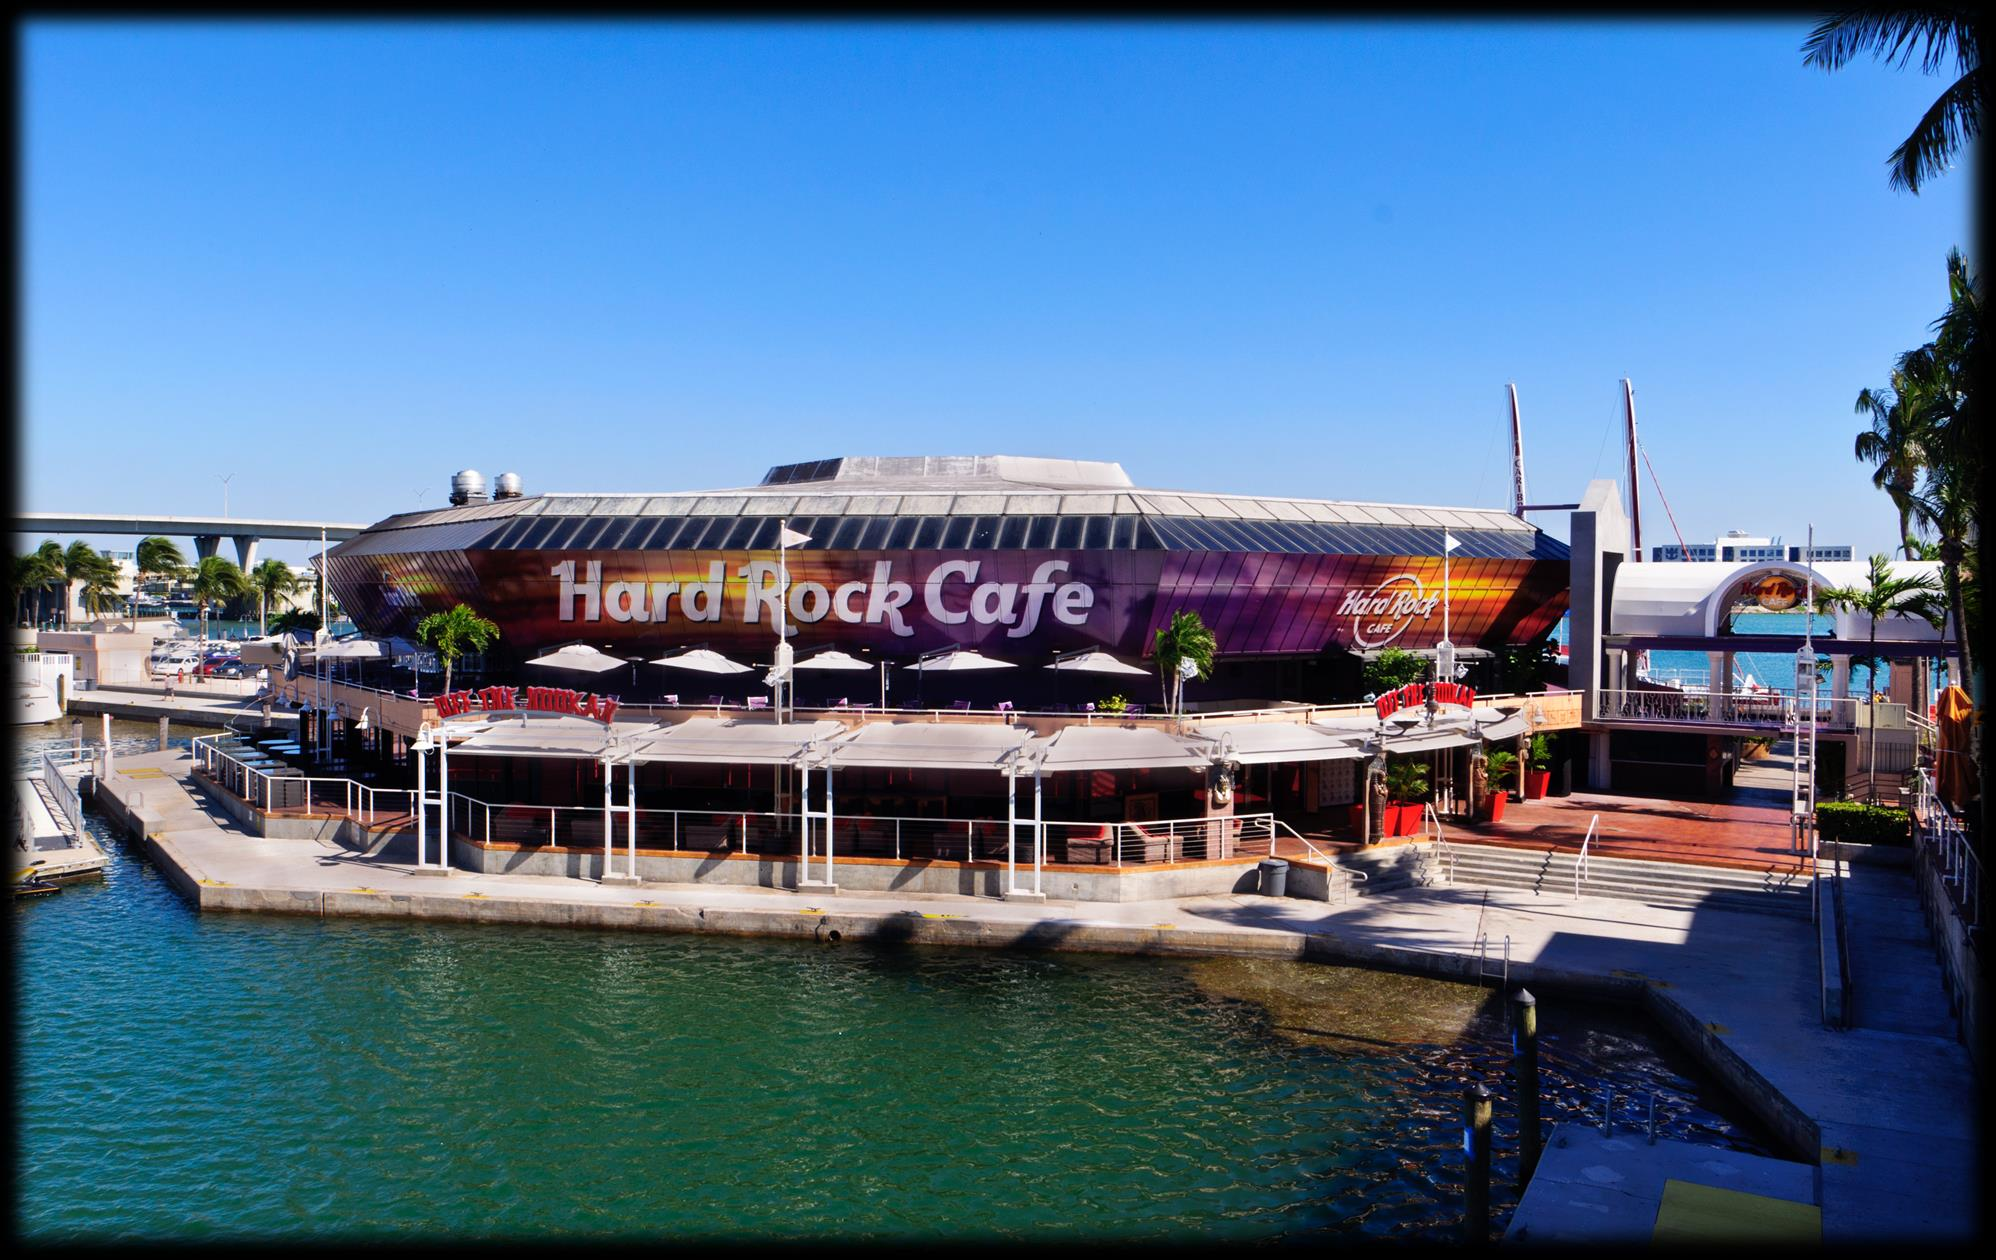 Hard Rock Cafe Miami Sales Kit Heydyn Hernandez 305-377-3110